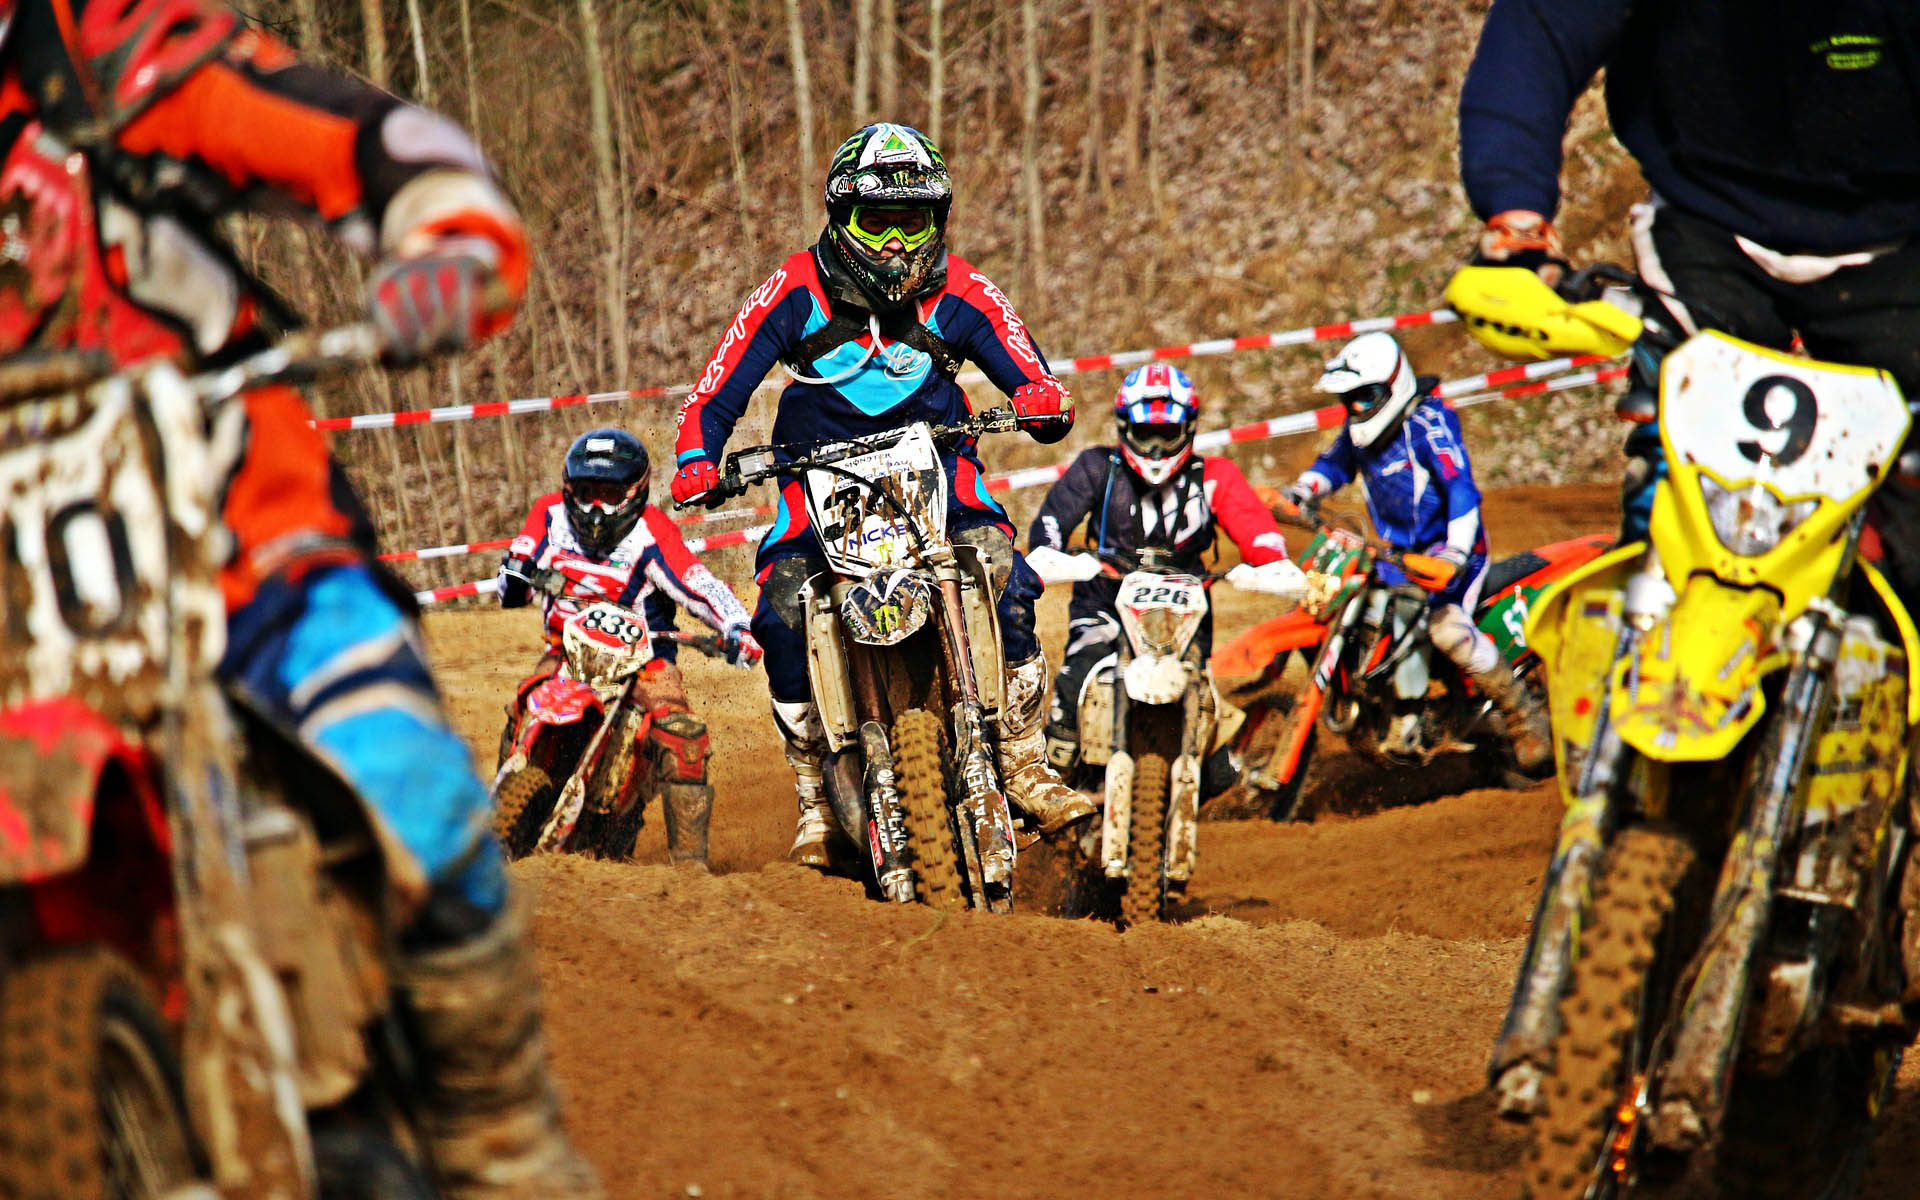 East Bay Motocross